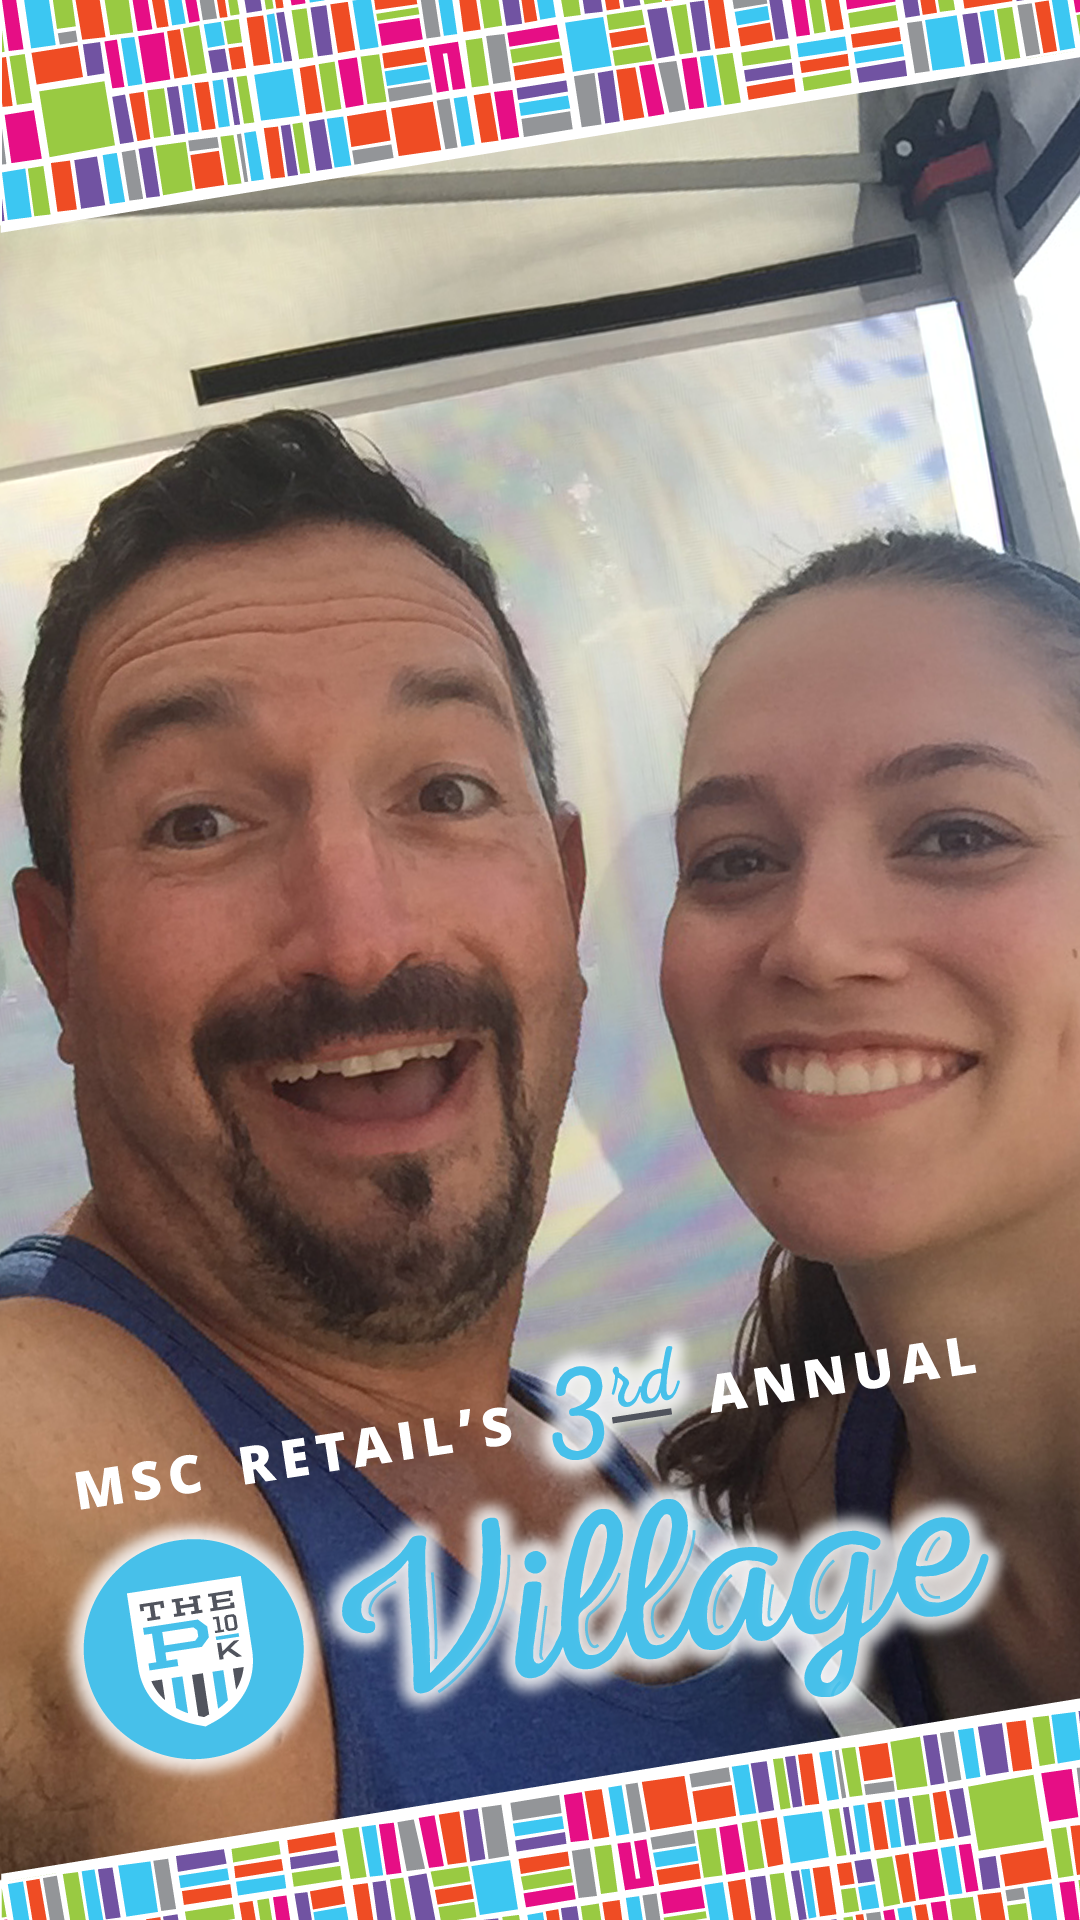 Snapchat filter designed using MSC Retail Village logo by Stacey Toseland